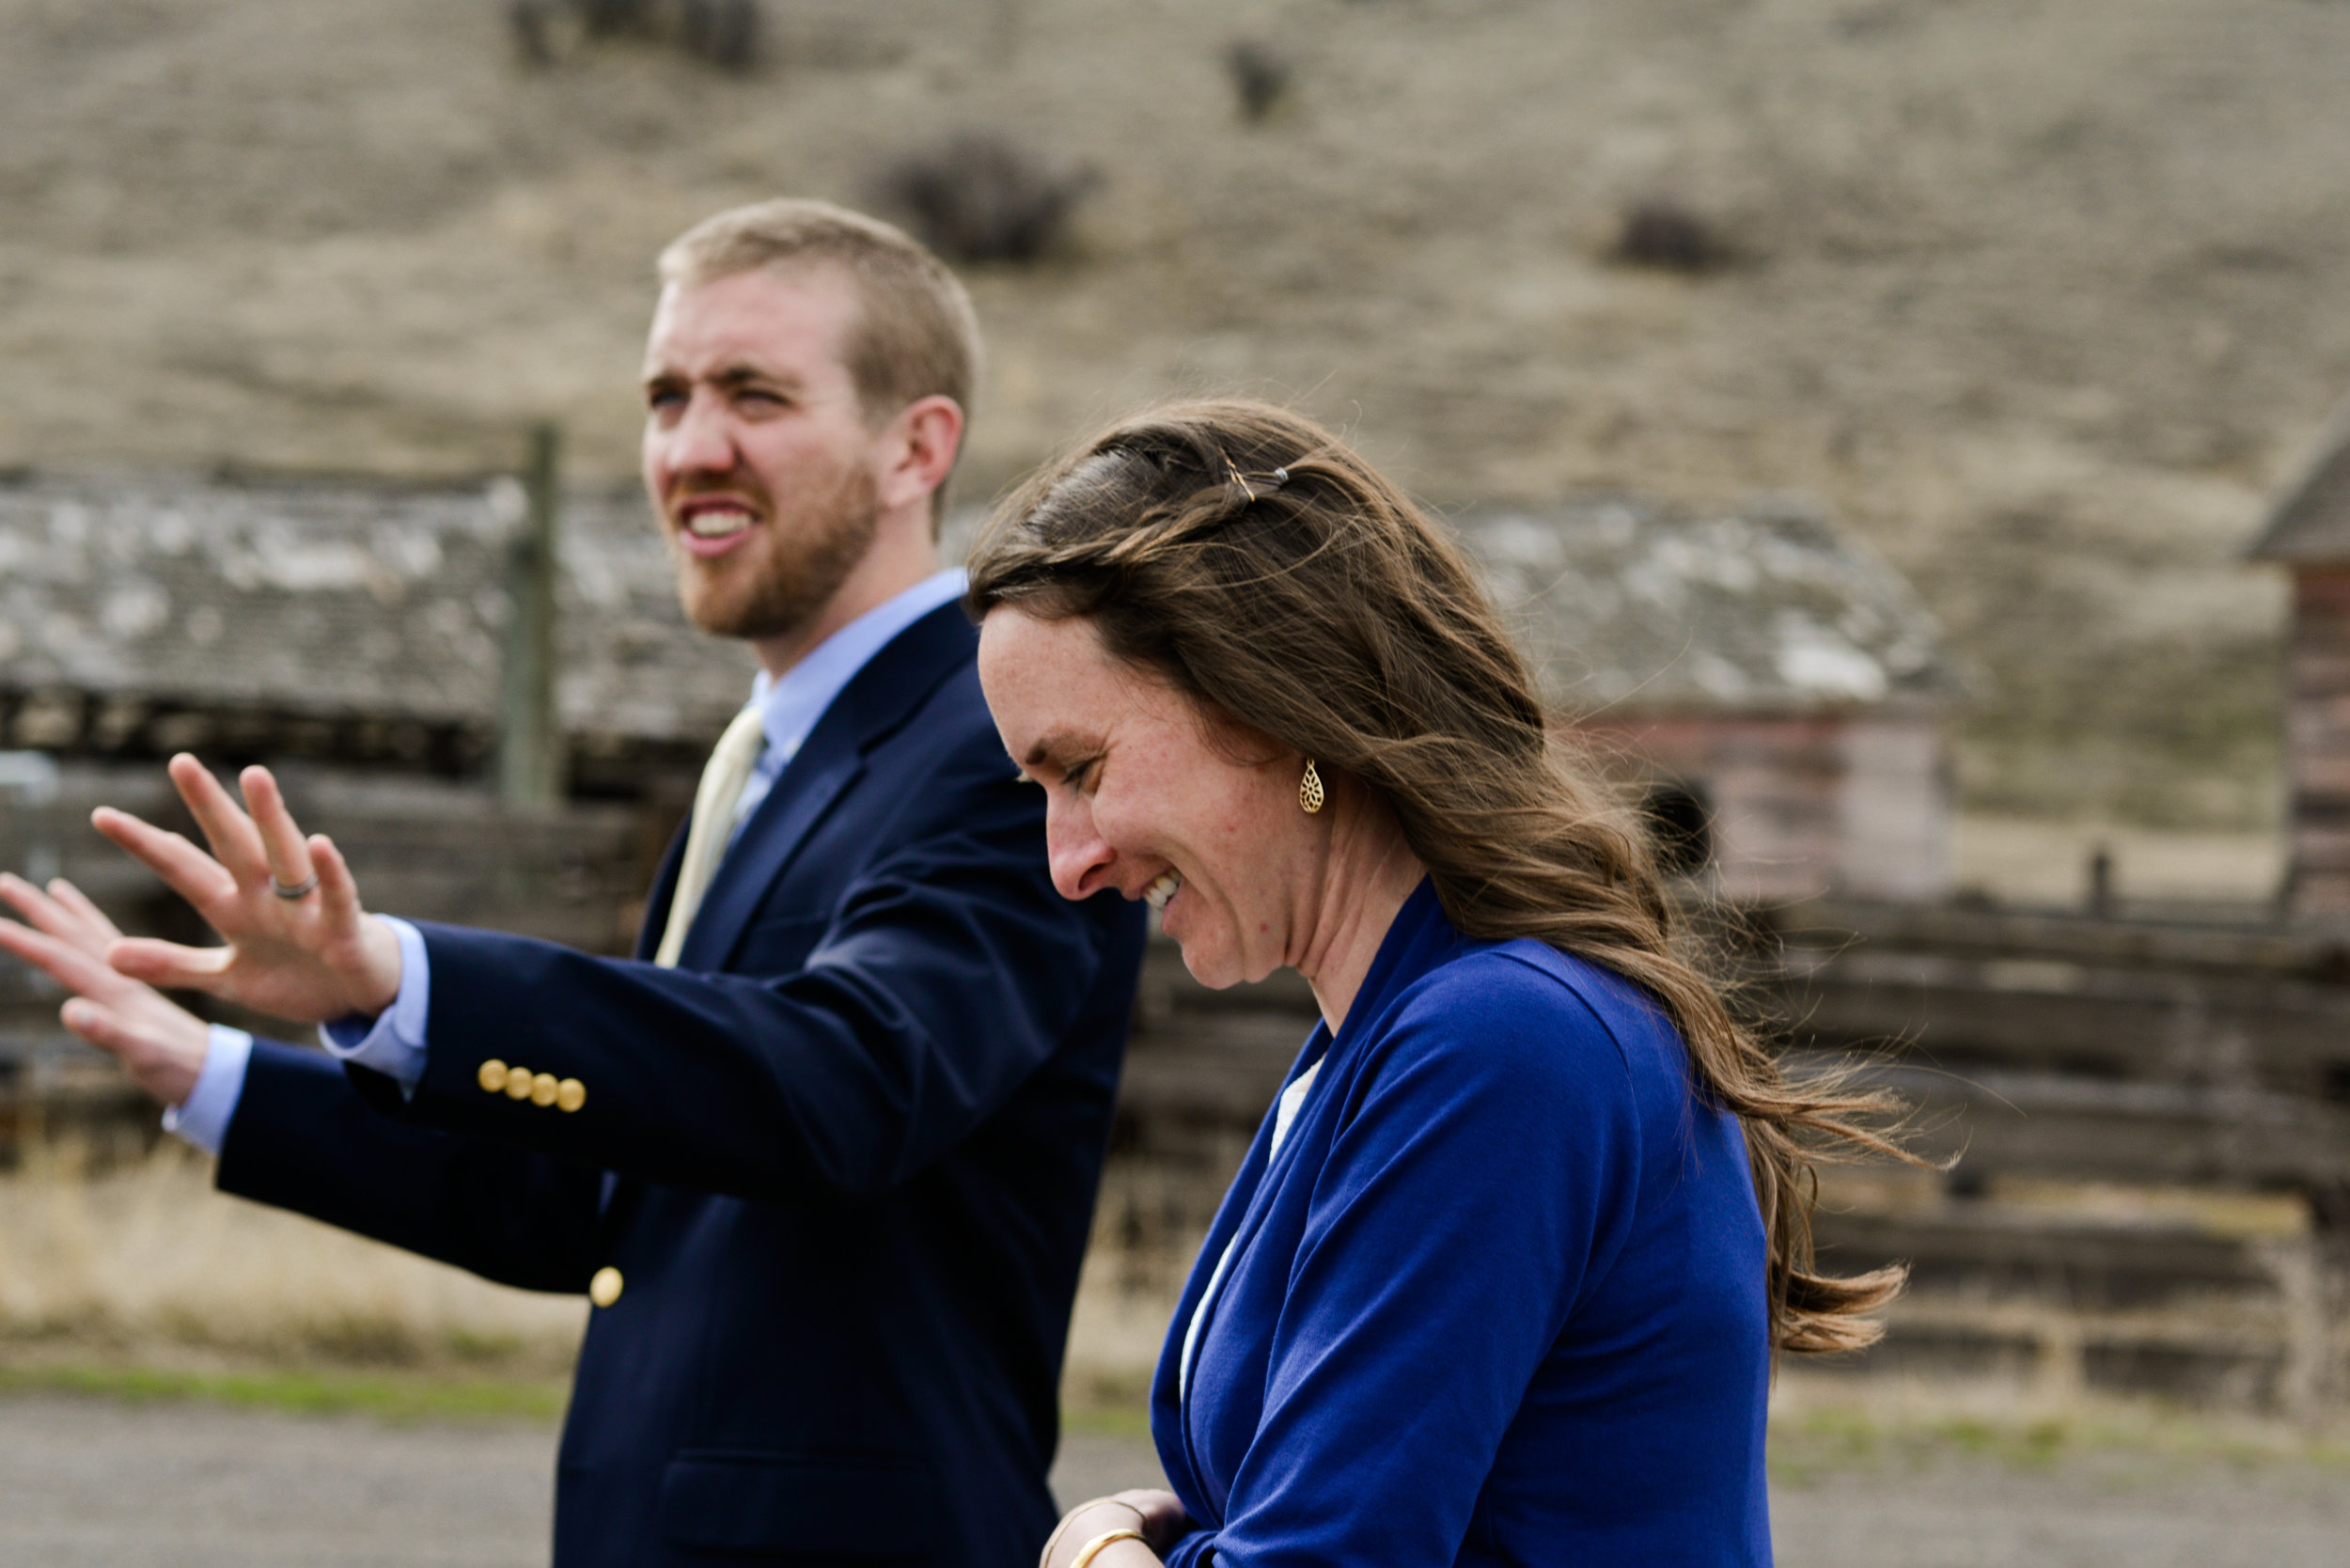 Ryan Melanie Elopement Enterprse Oregon Spring 2019 Please Credit Talia Jean Galvin (137 of 220).jpg